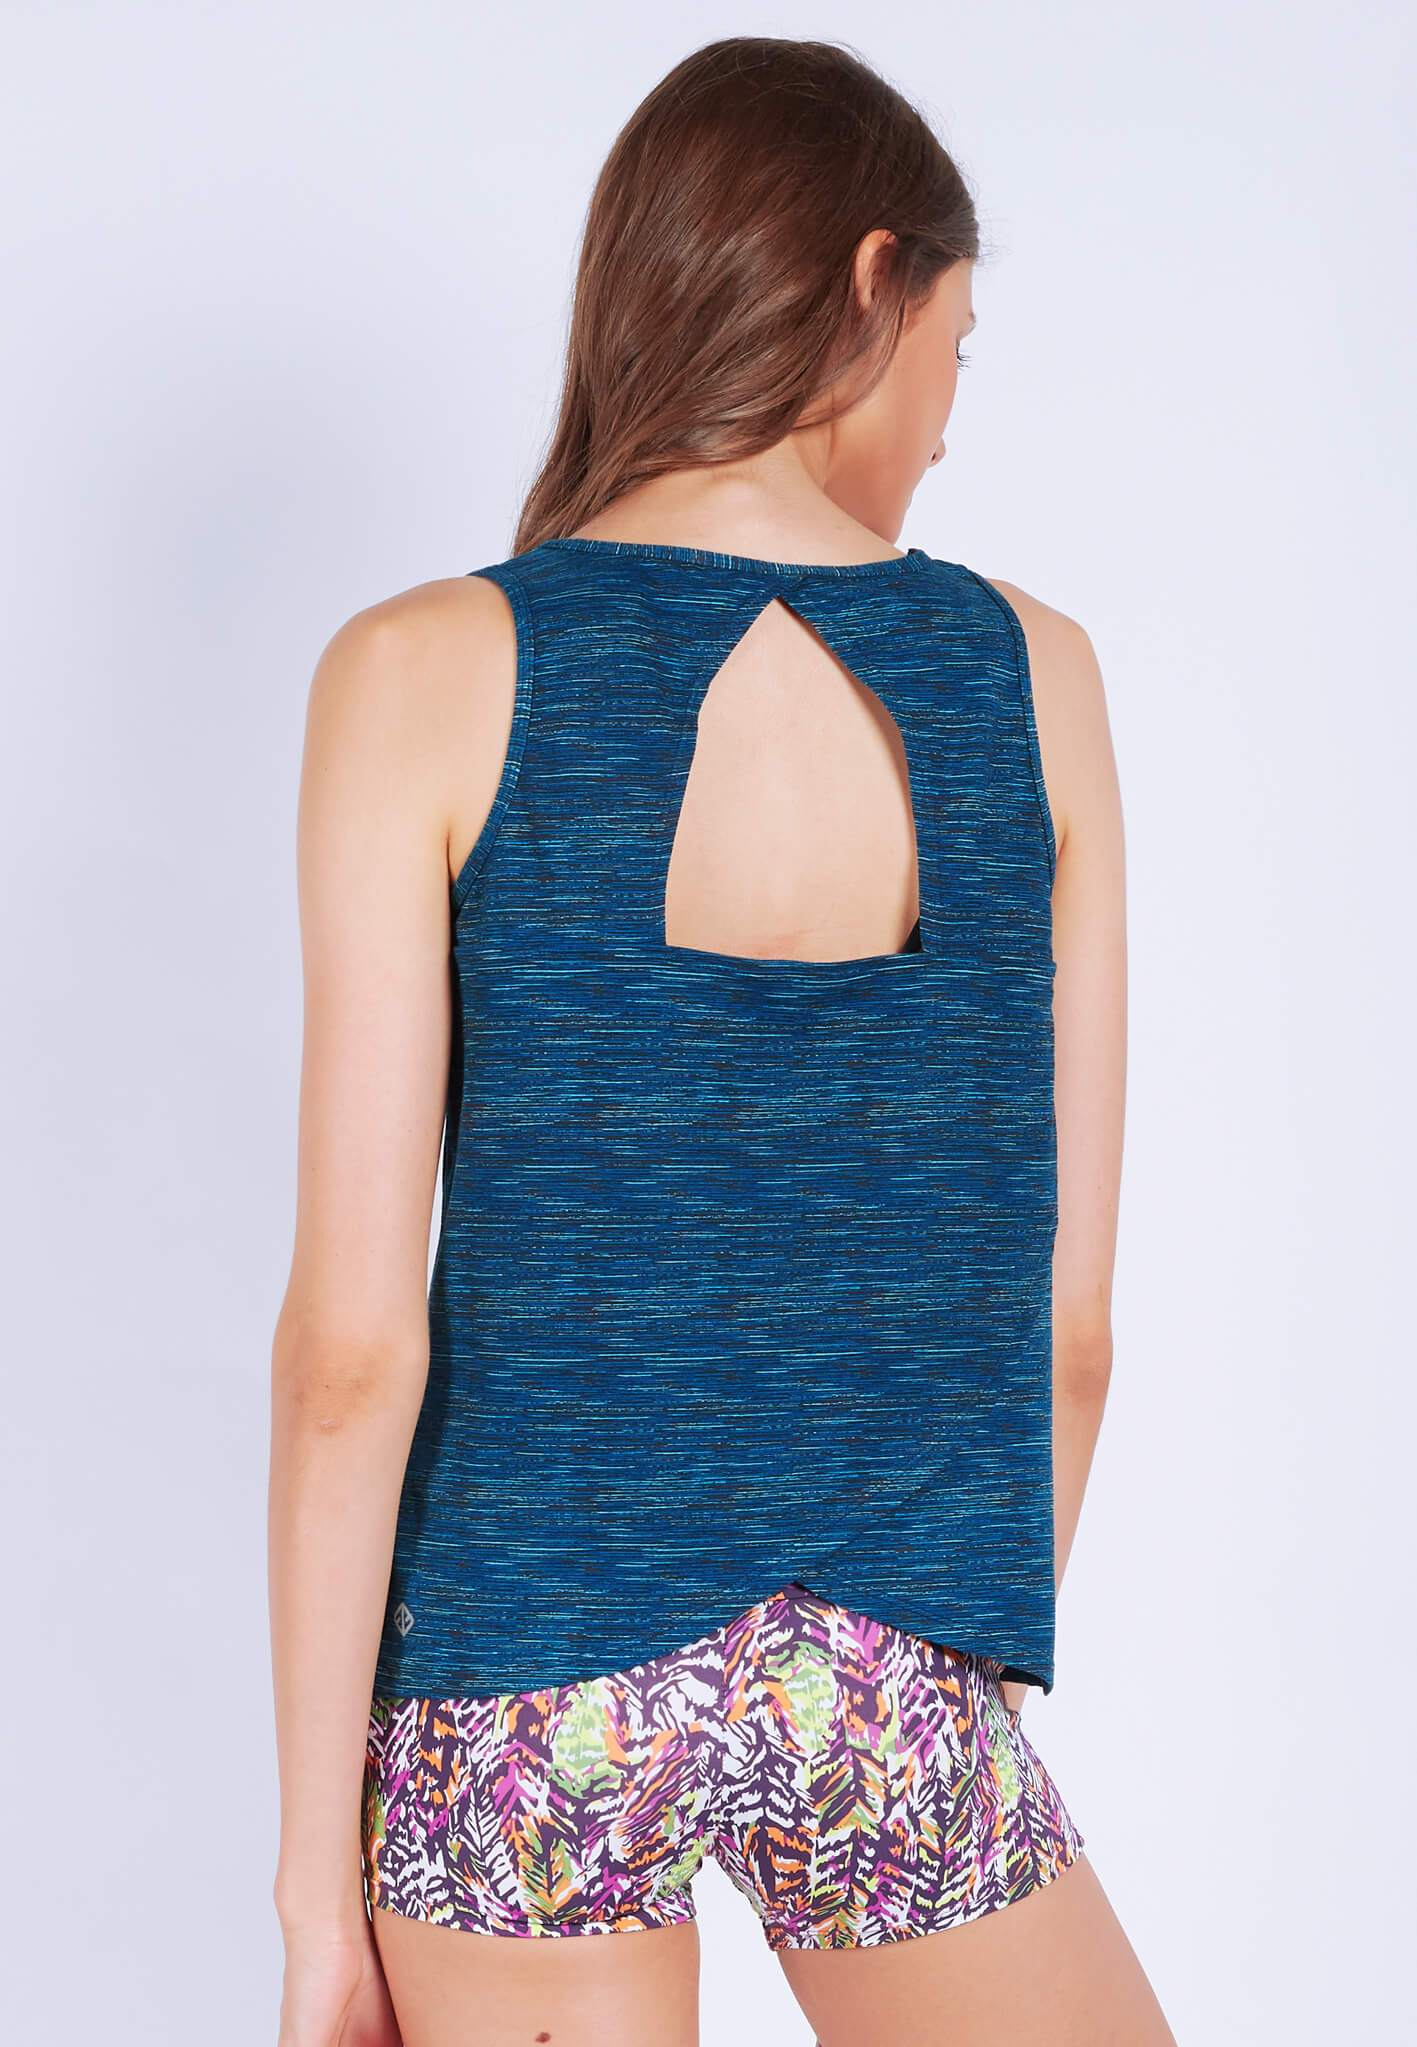 FUNFIT Freedom Open-back Tank Top in Heather Navy (S - XL)